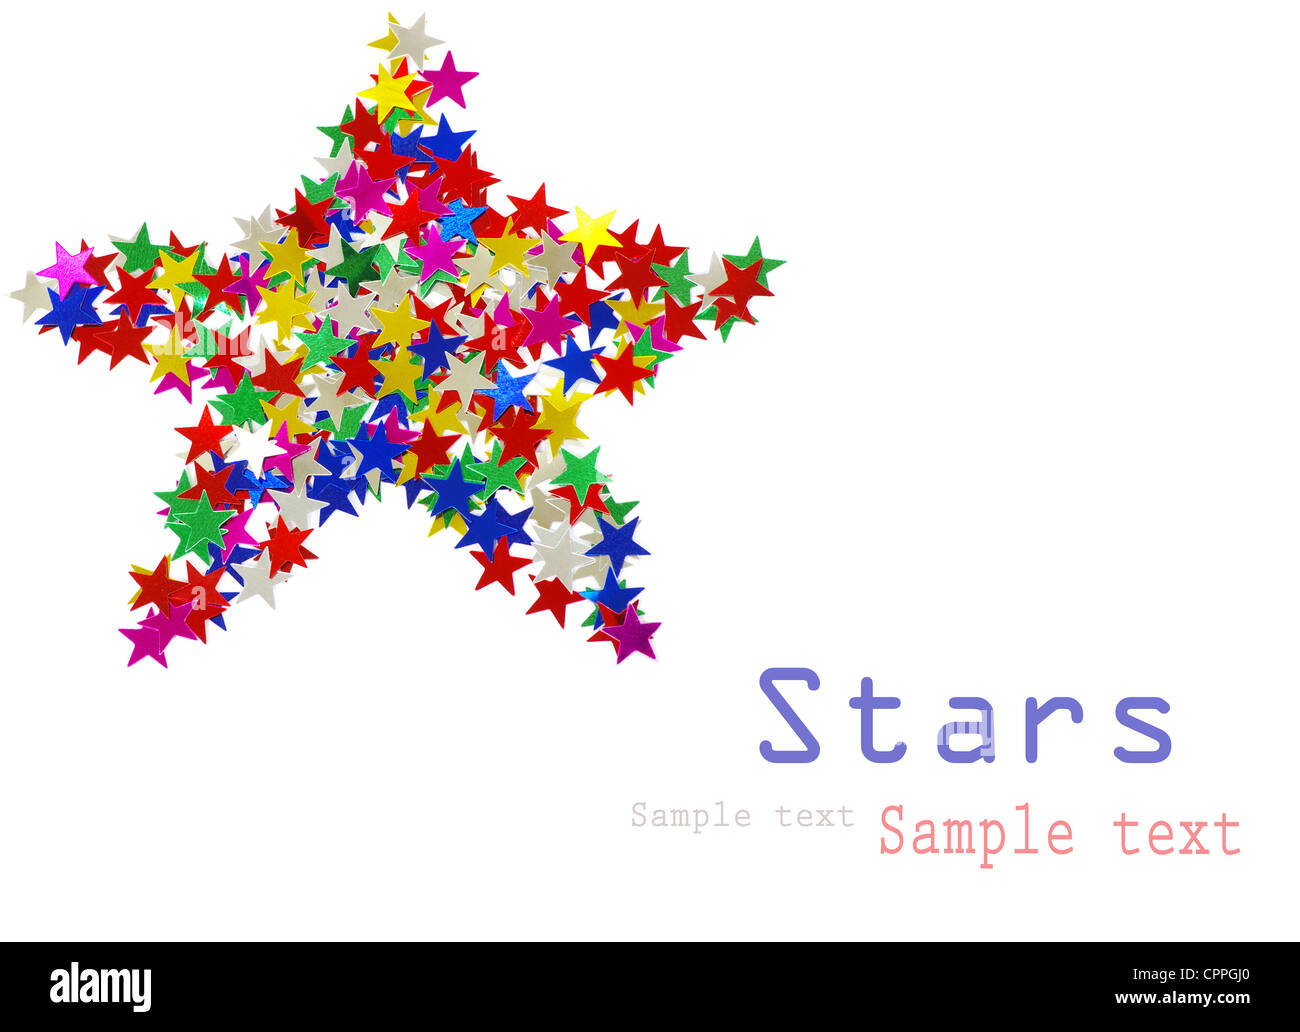 Big star composed of many colored stars on white - Stock Image